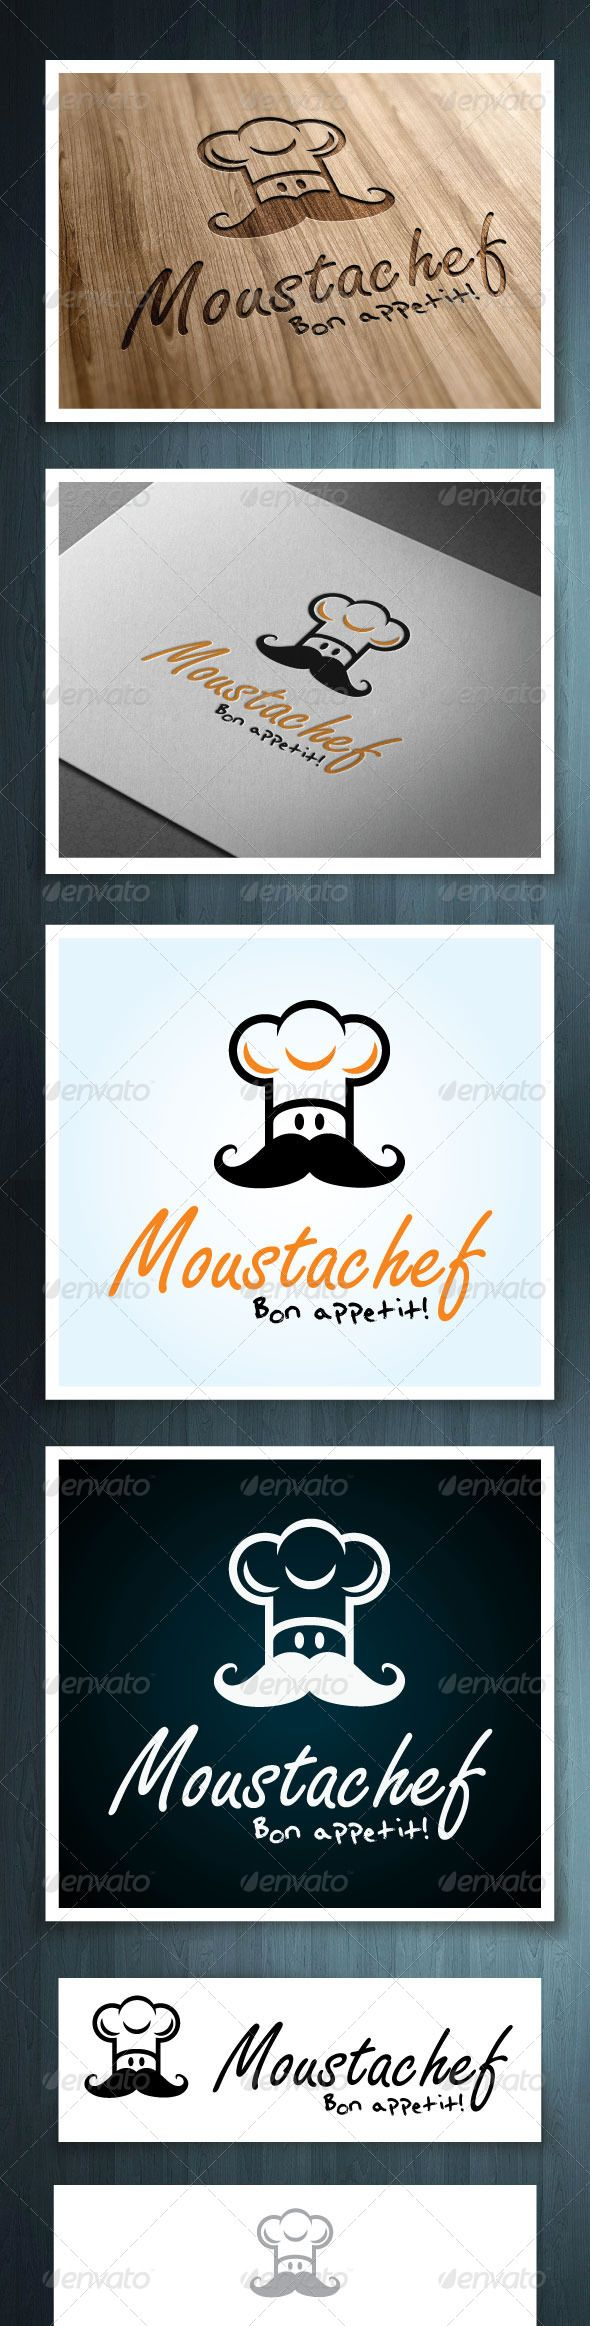 Moustachef #GraphicRiver Moustachef is a multipurpose logo, can be used in any companies related to food, cooking, baking. Ideal for restaurants, and fast food companies. Ai & EPS 10 CMYK 100% vector Easy to edit color and text Font name, and link included in the info file. Created: 25June13 GraphicsFilesIncluded: VectorEPS #AIIllustrator Layered: No MinimumAdobeCSVersion: CS Resolution: Resizable Tags: bar #bistro #breakfast #catering #chef #cook #delivery #dinner #eat #fastfood #food #logo…